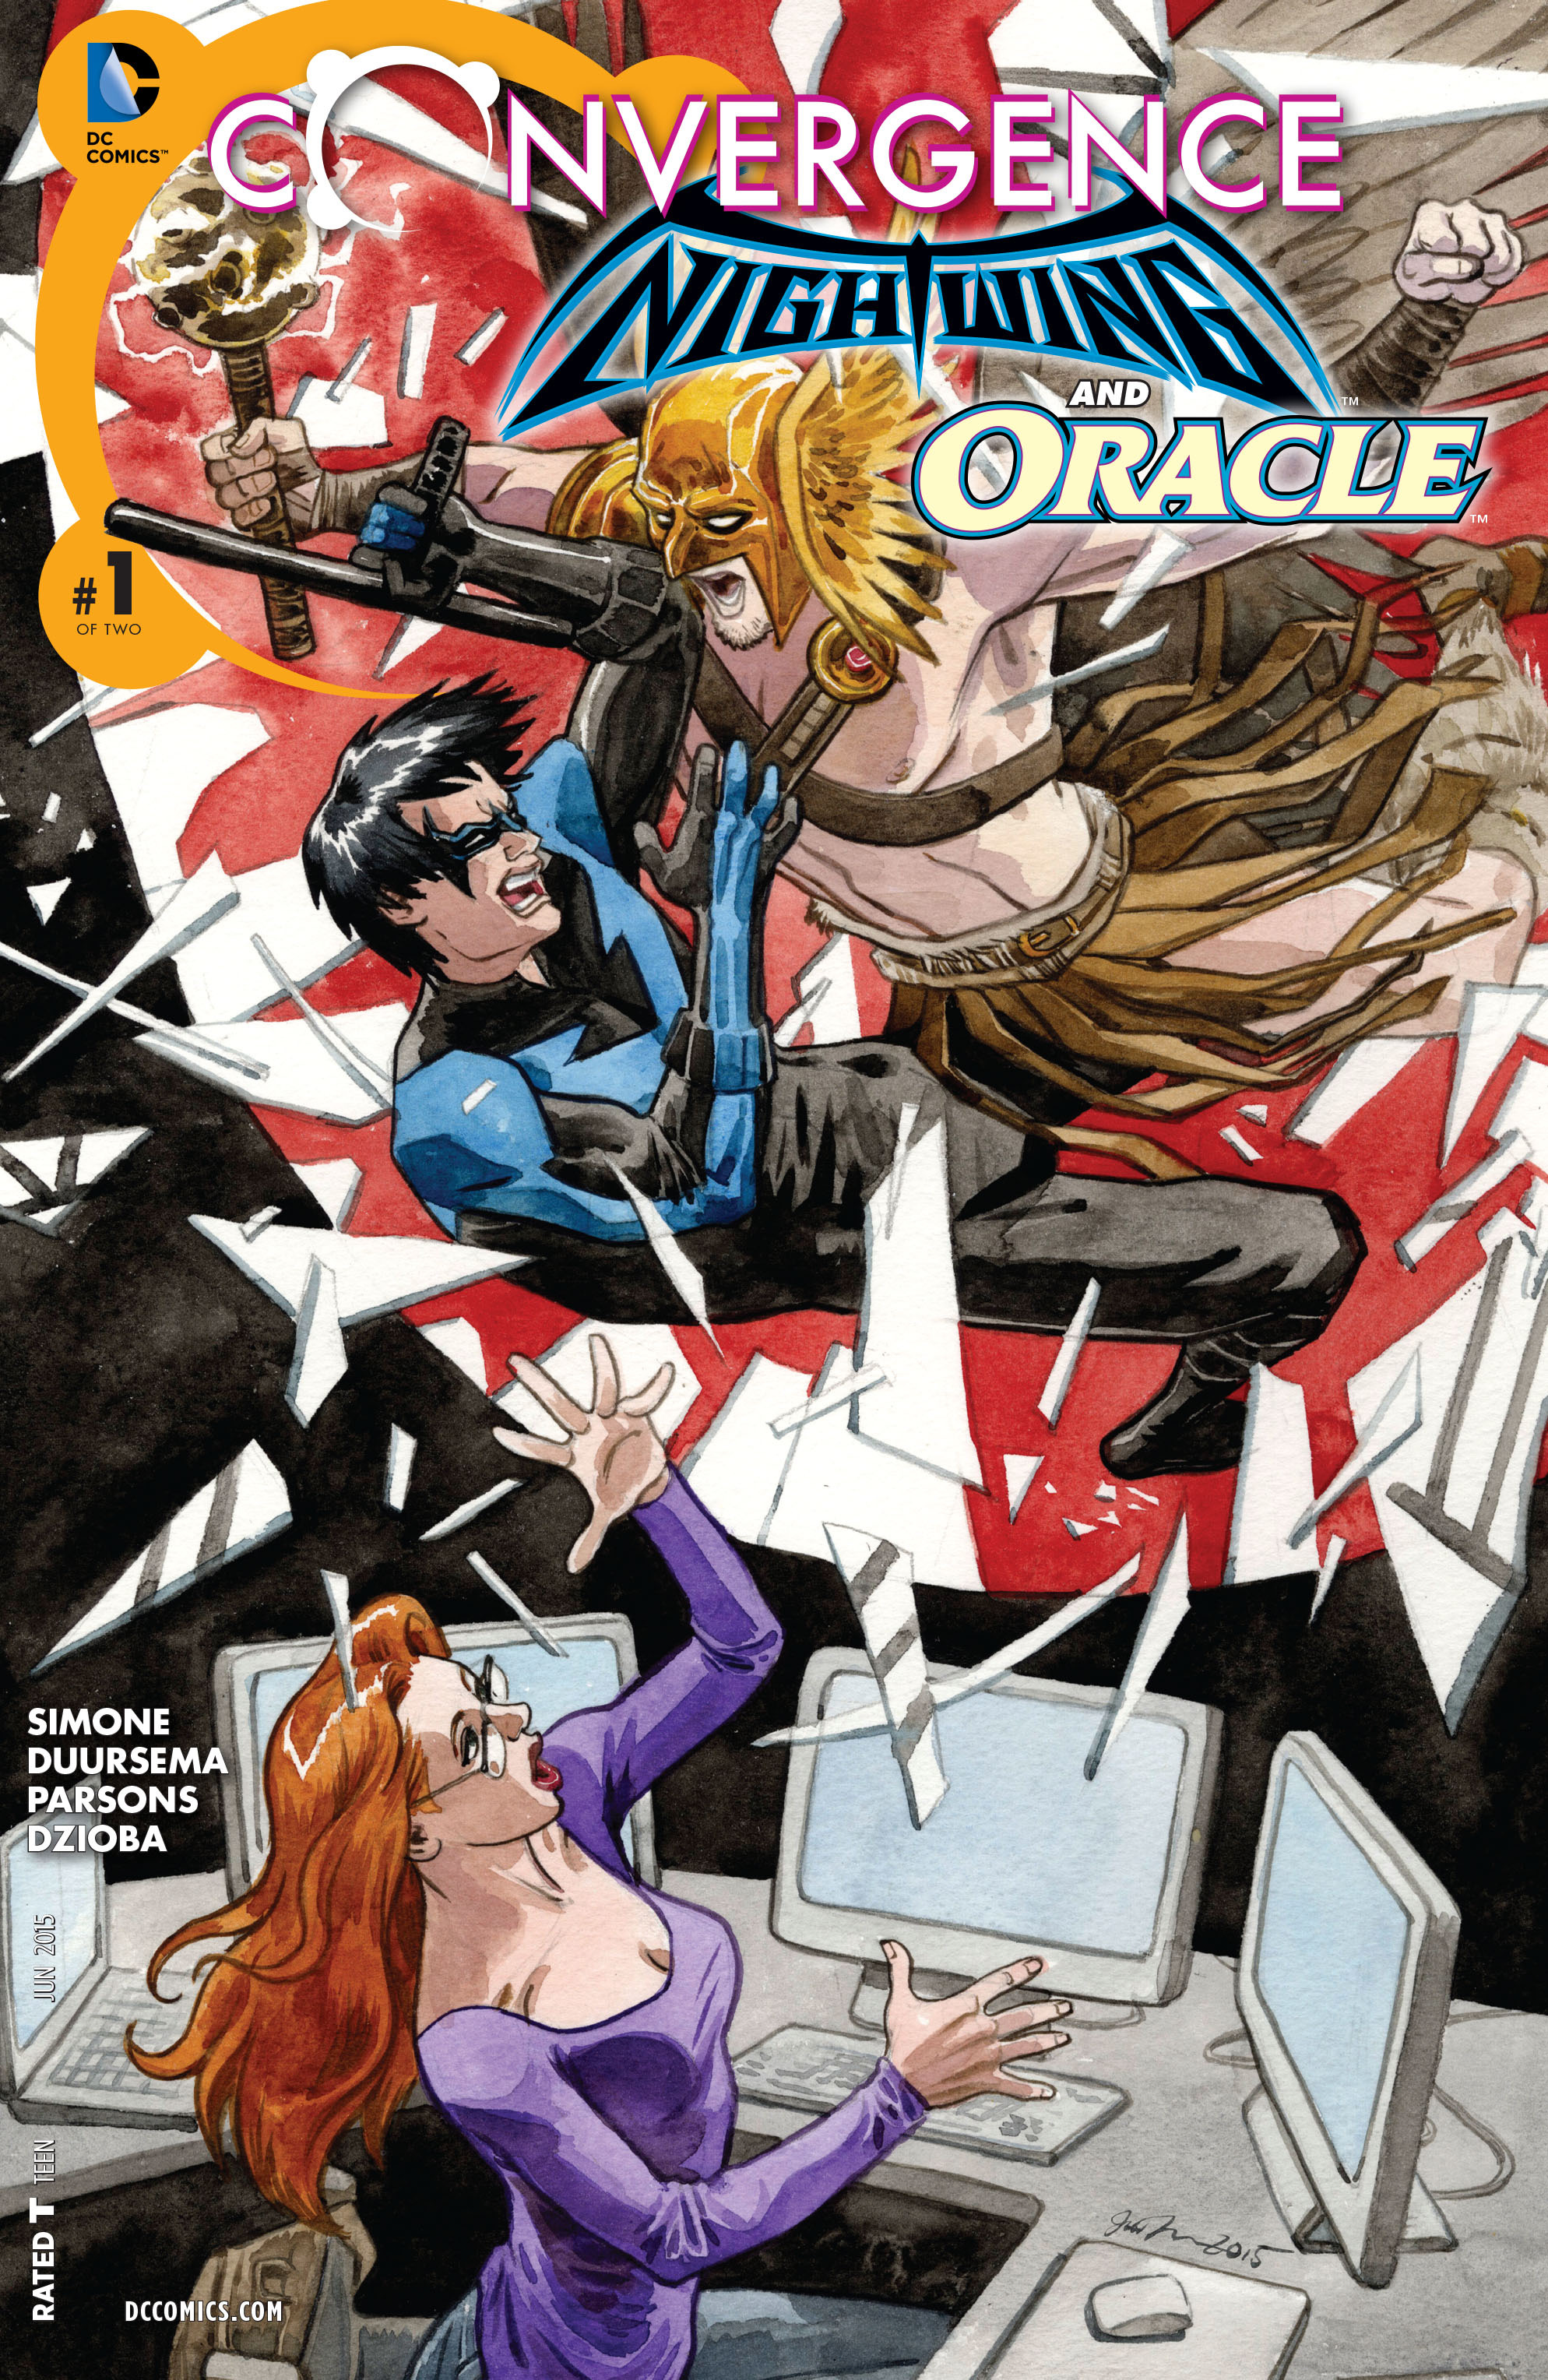 Convergence Nightwing Oracle Vol 1